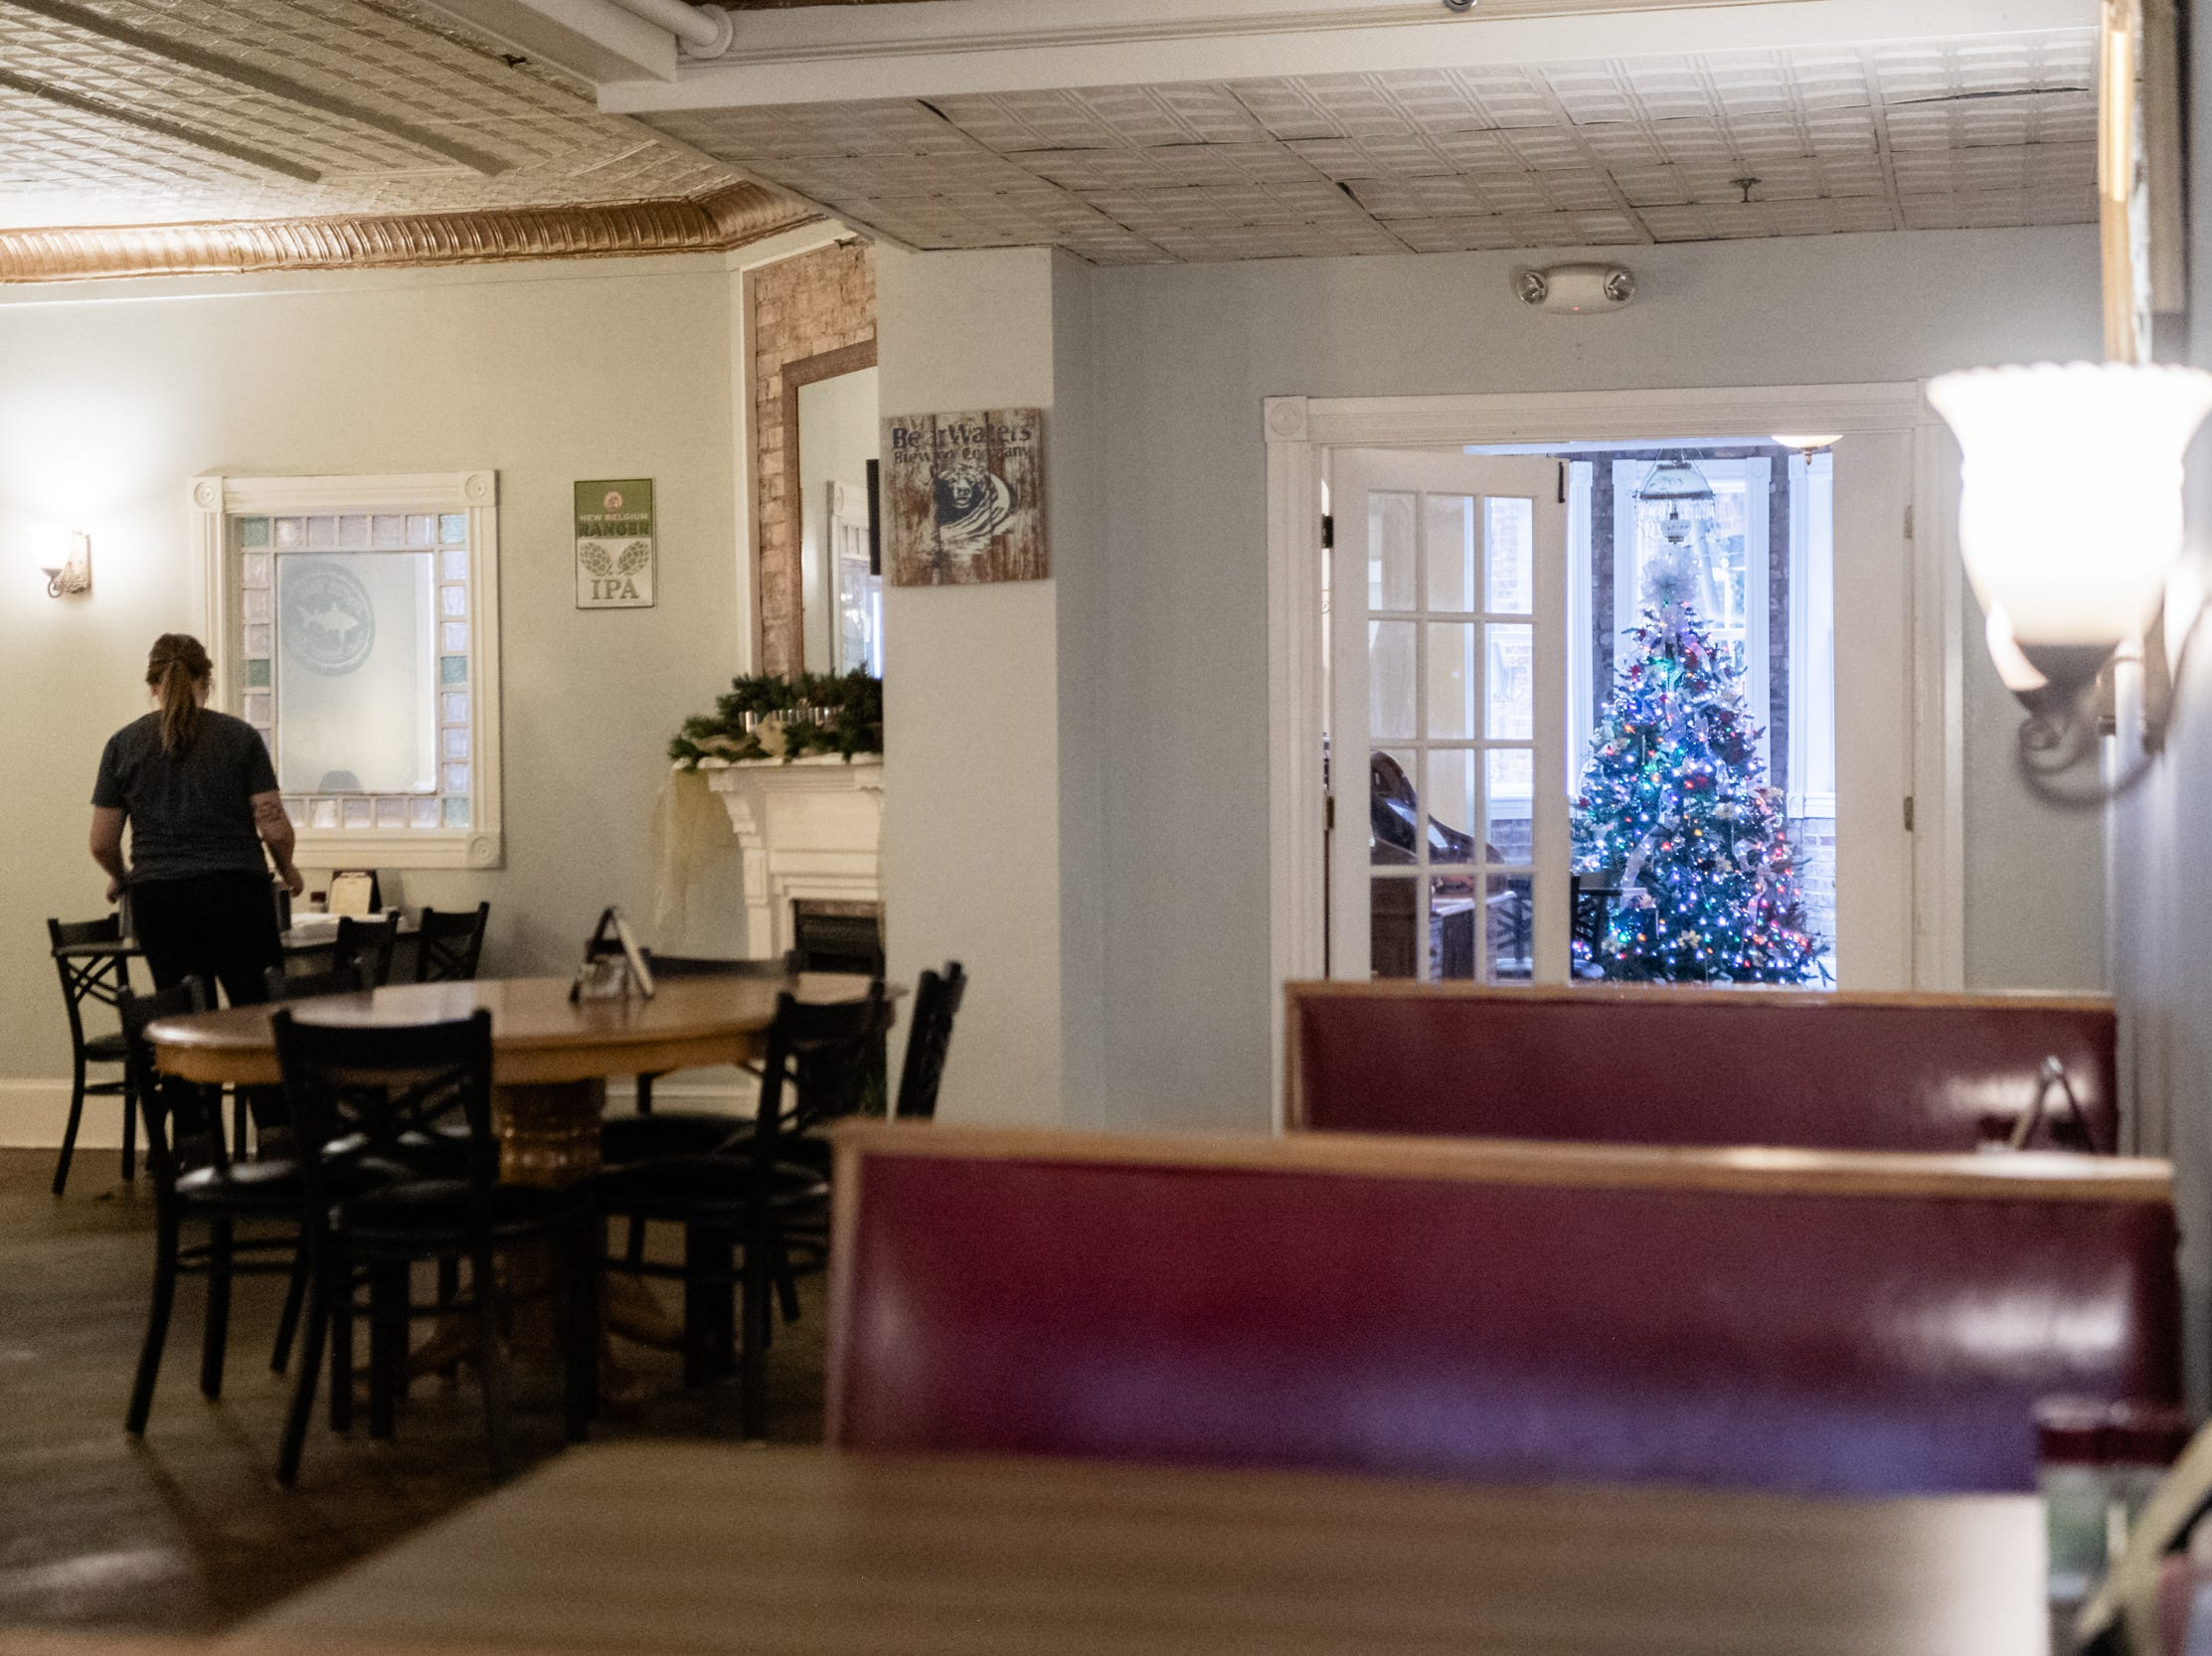 Southern Porch restaurant located at the historic Imperial Hotel in Canton.